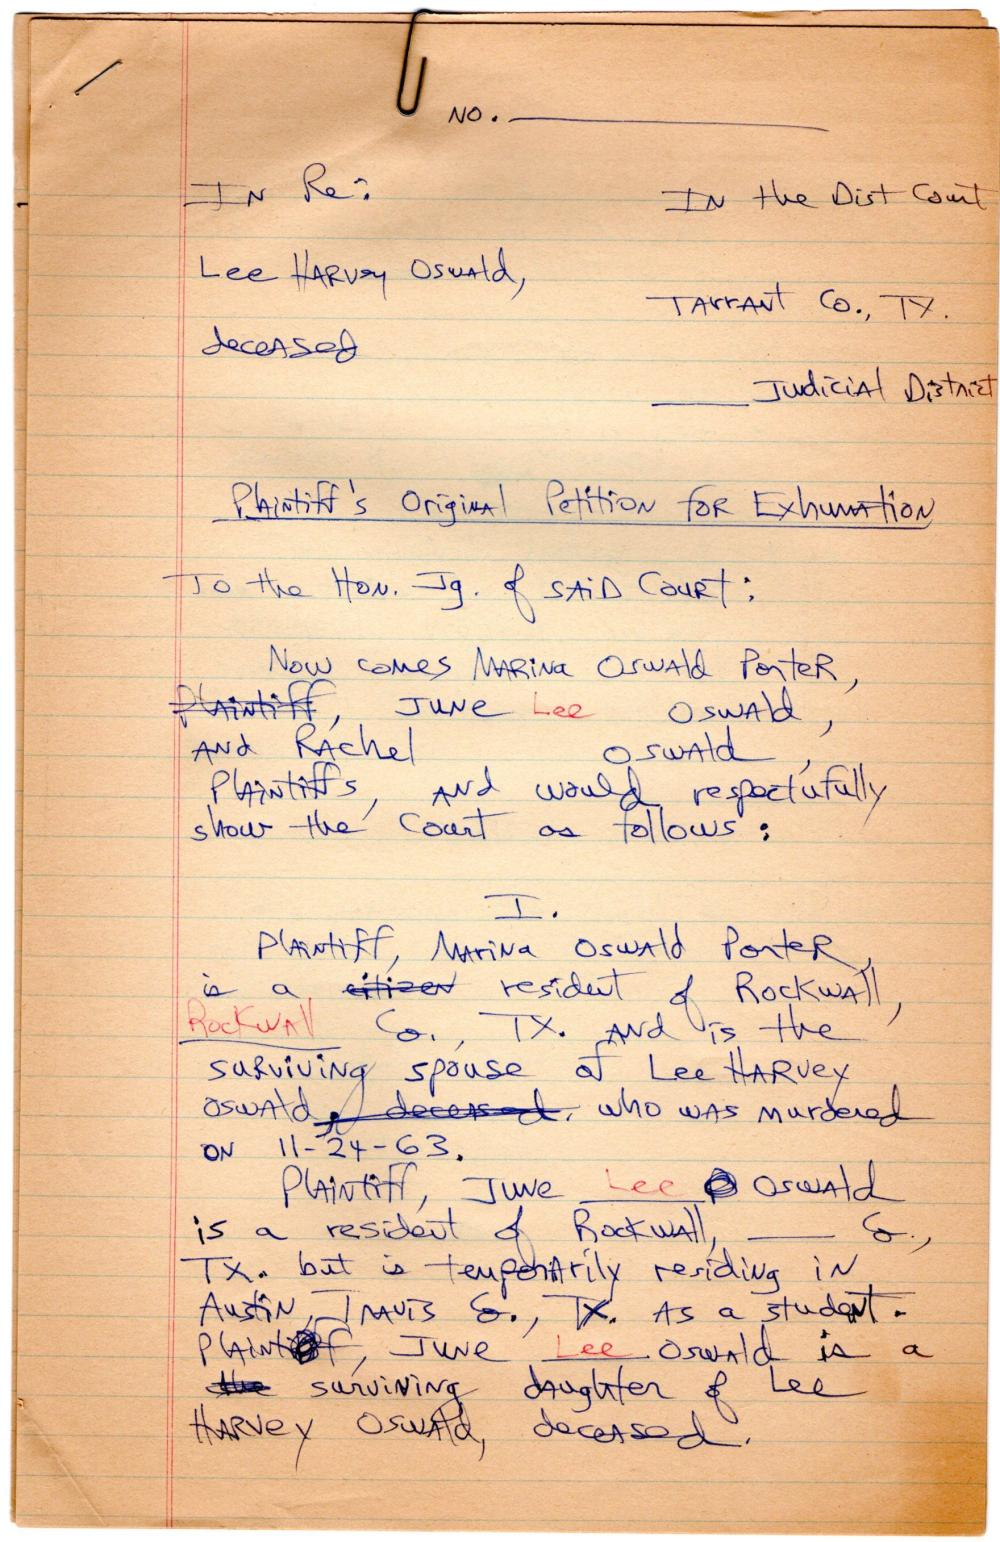 Lee Harvey OswaldAn Archive of 176 Pages, Lawyer's Notes and Letters Related to the Exhumation of Oswald's Body in 1981